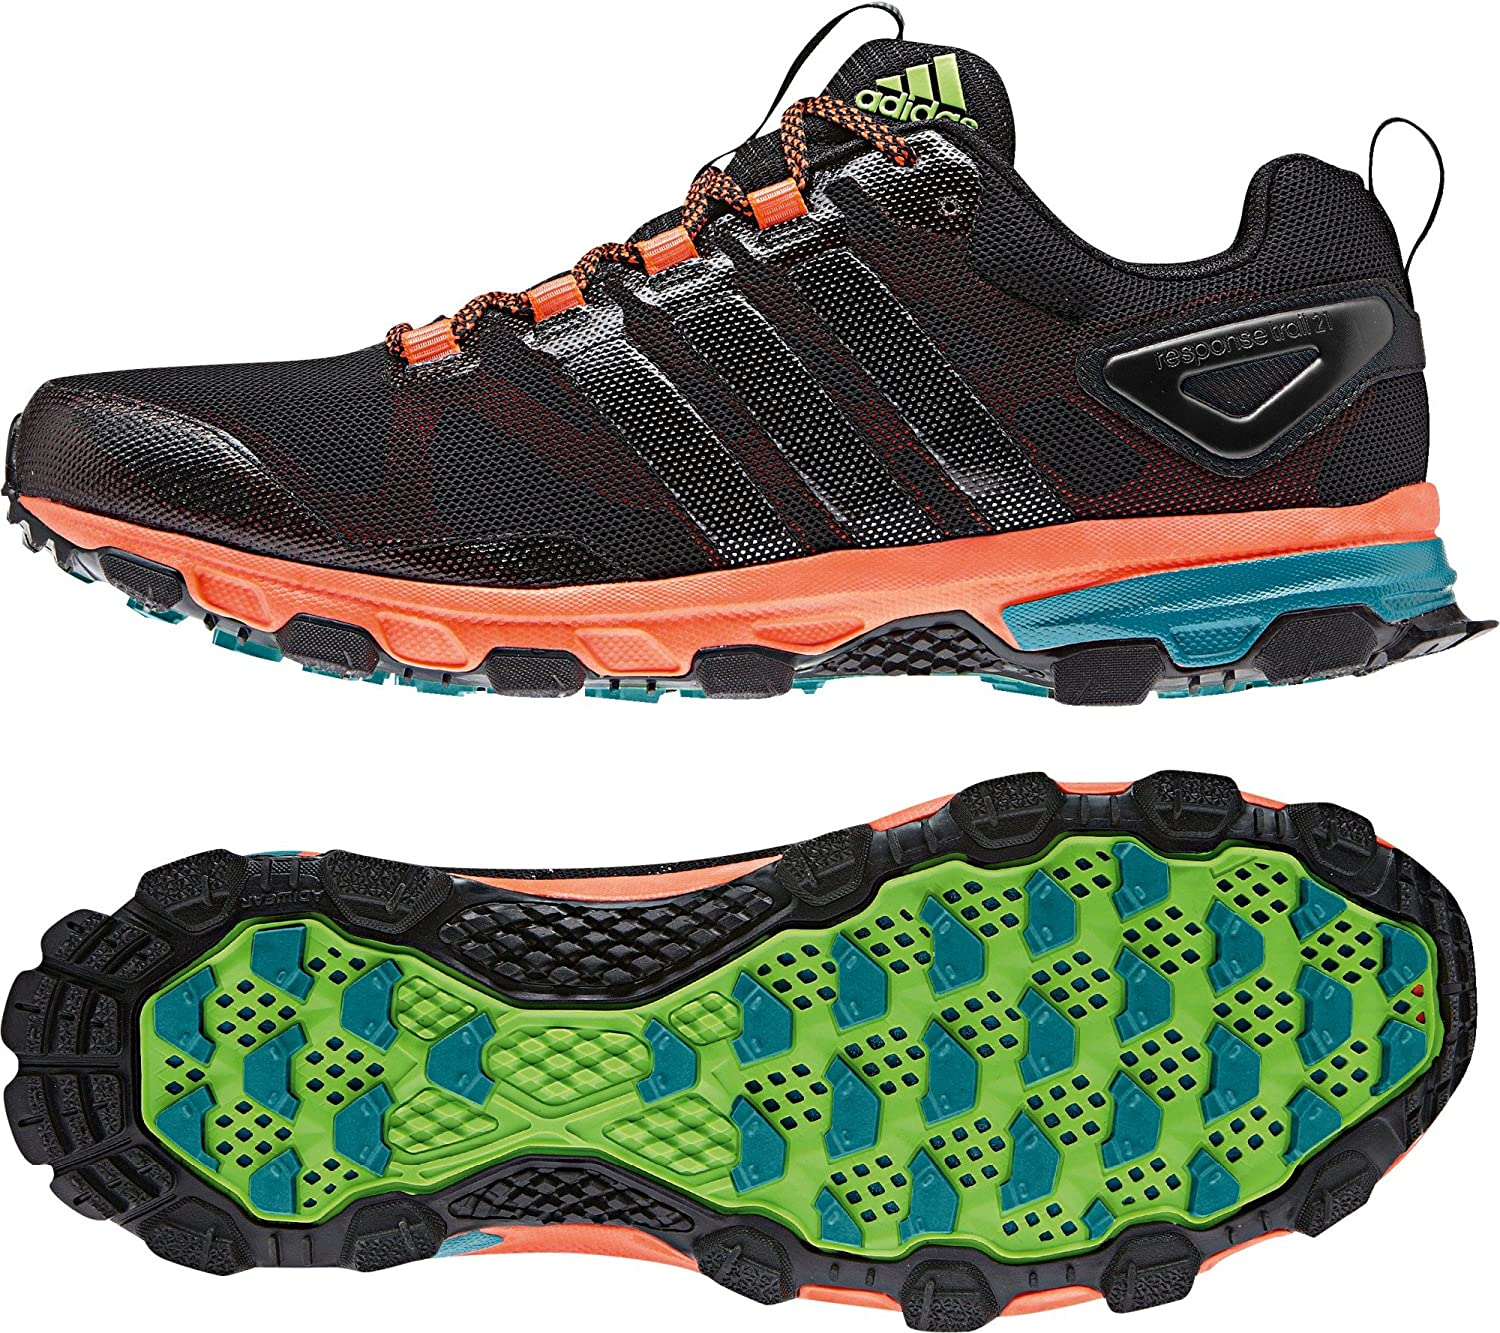 pistola Cita Absay  adidas Performance Response Trail 21 M mens Trail / Running Shoes:  Amazon.co.uk: Shoes & Bags